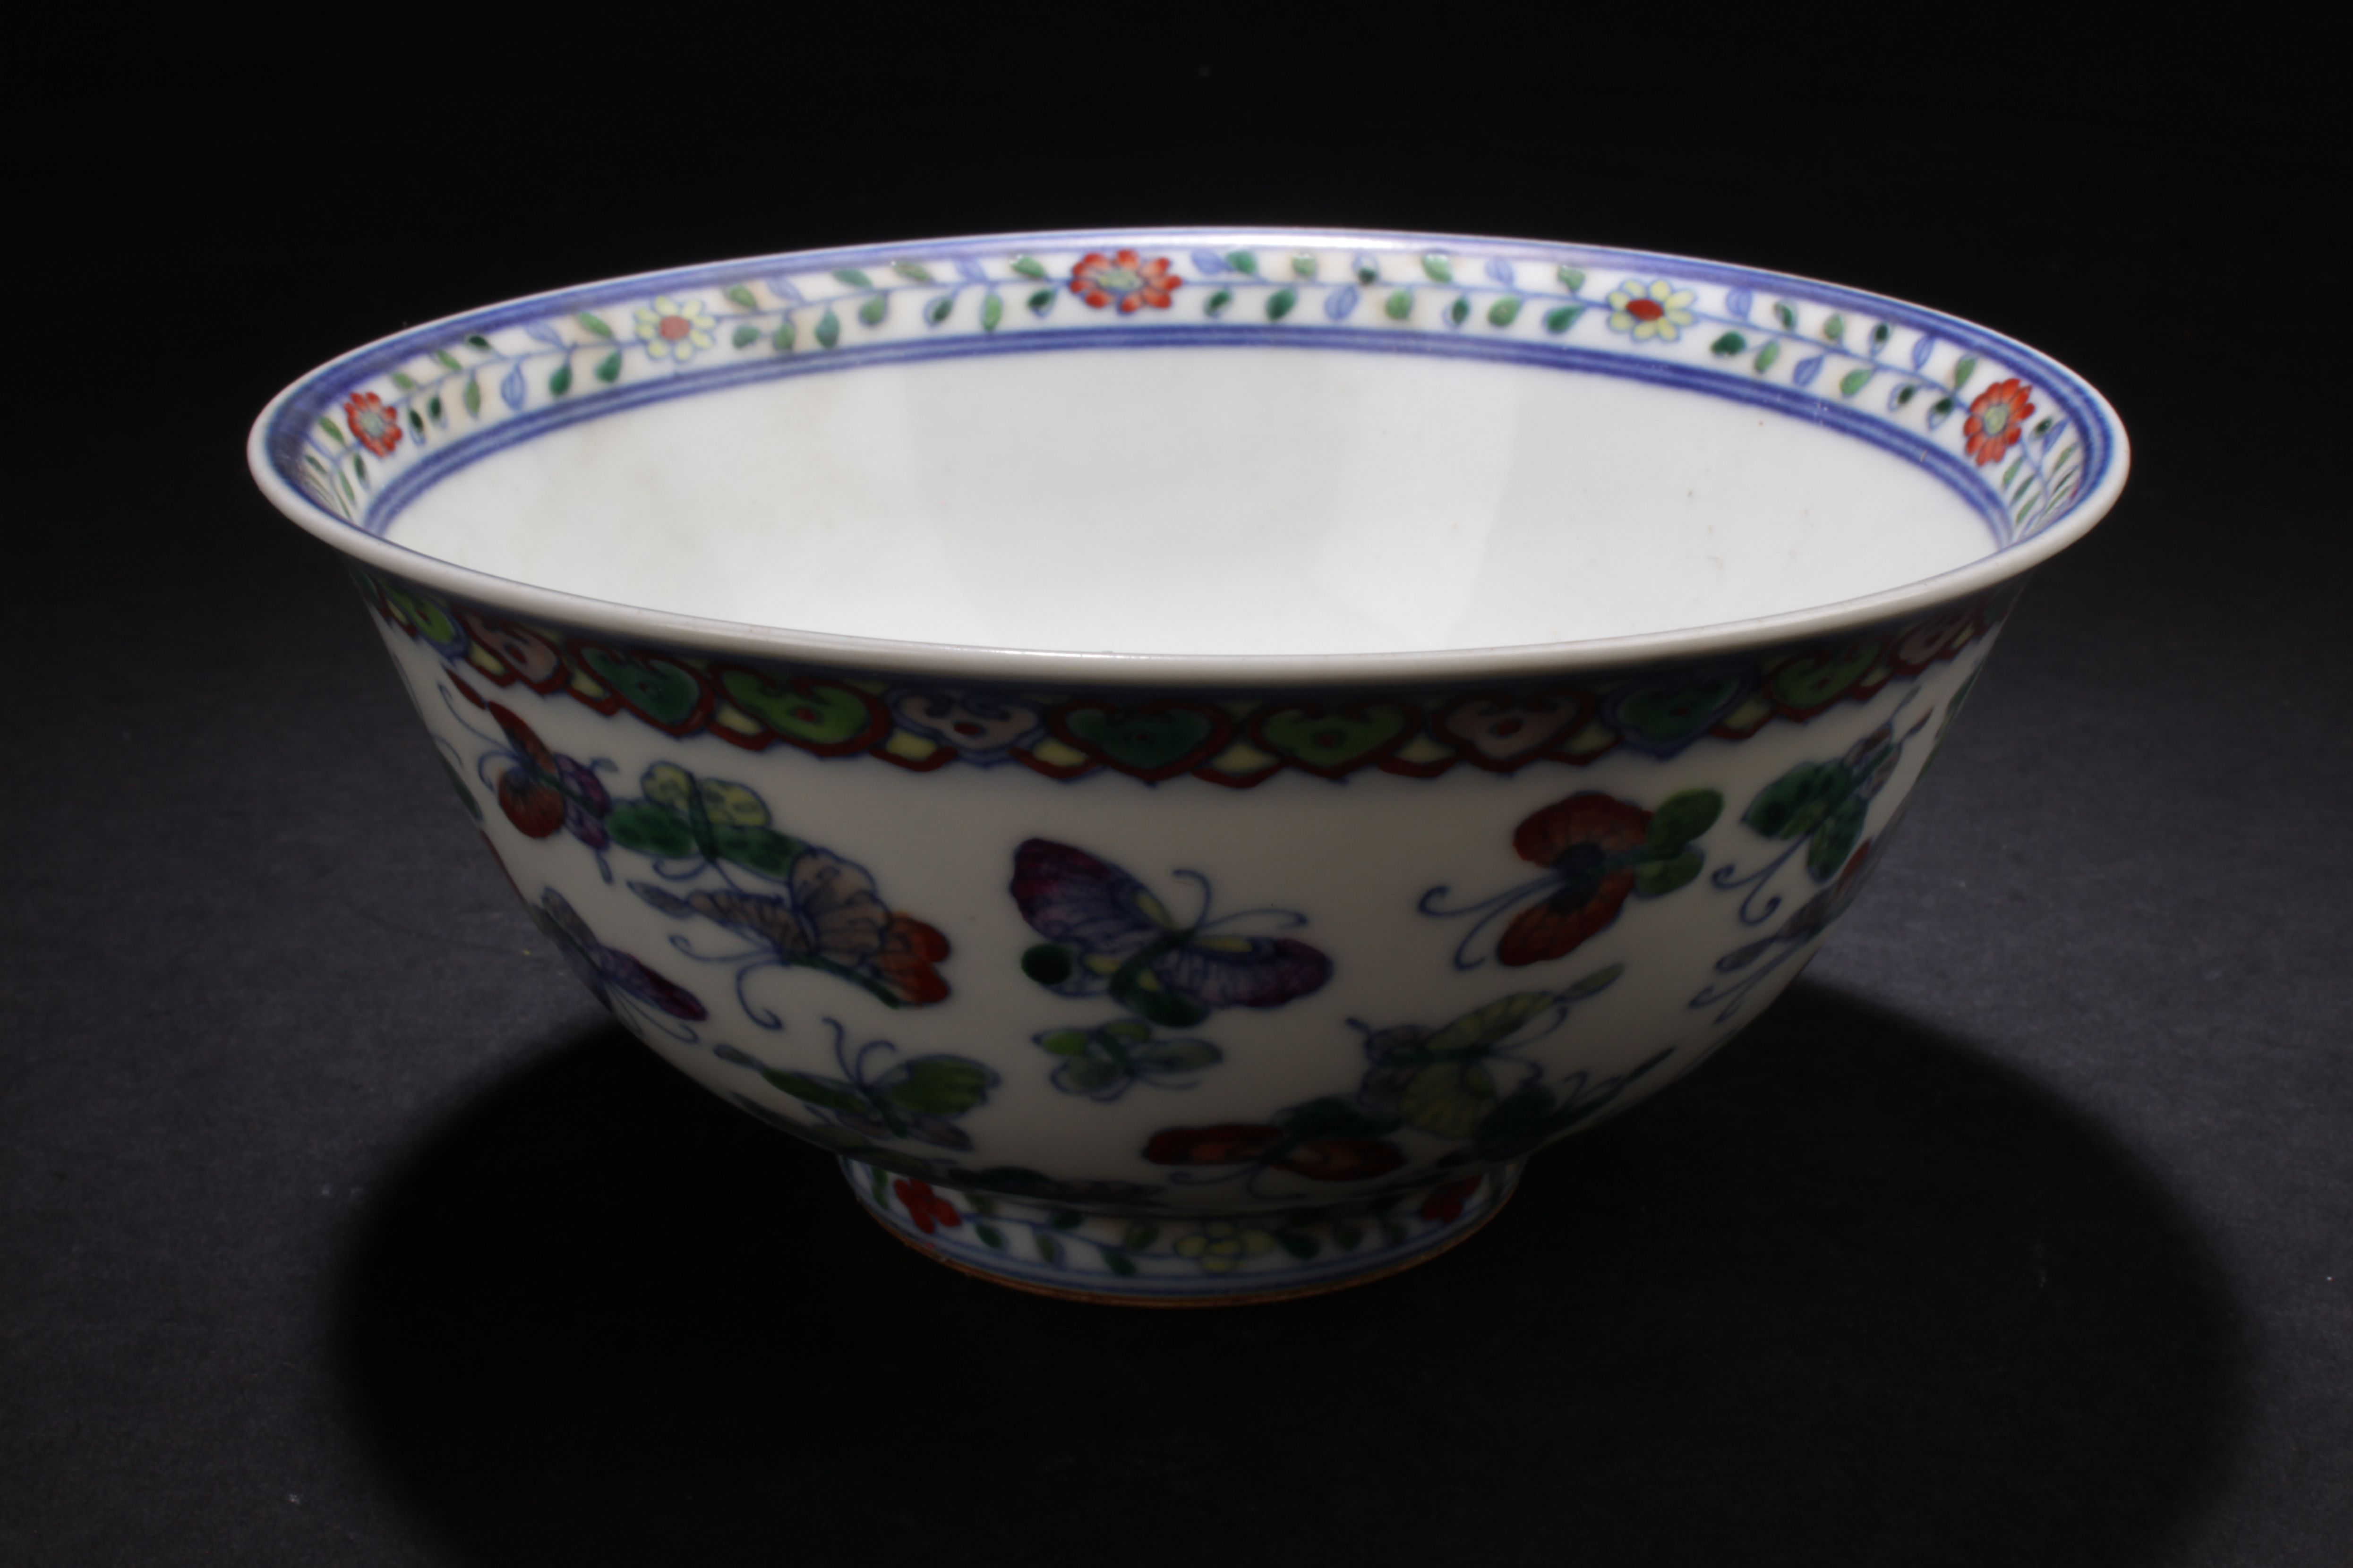 How To Display Bowls An Estate Chinese Butterfly Forutne Porcelain Display Bowl